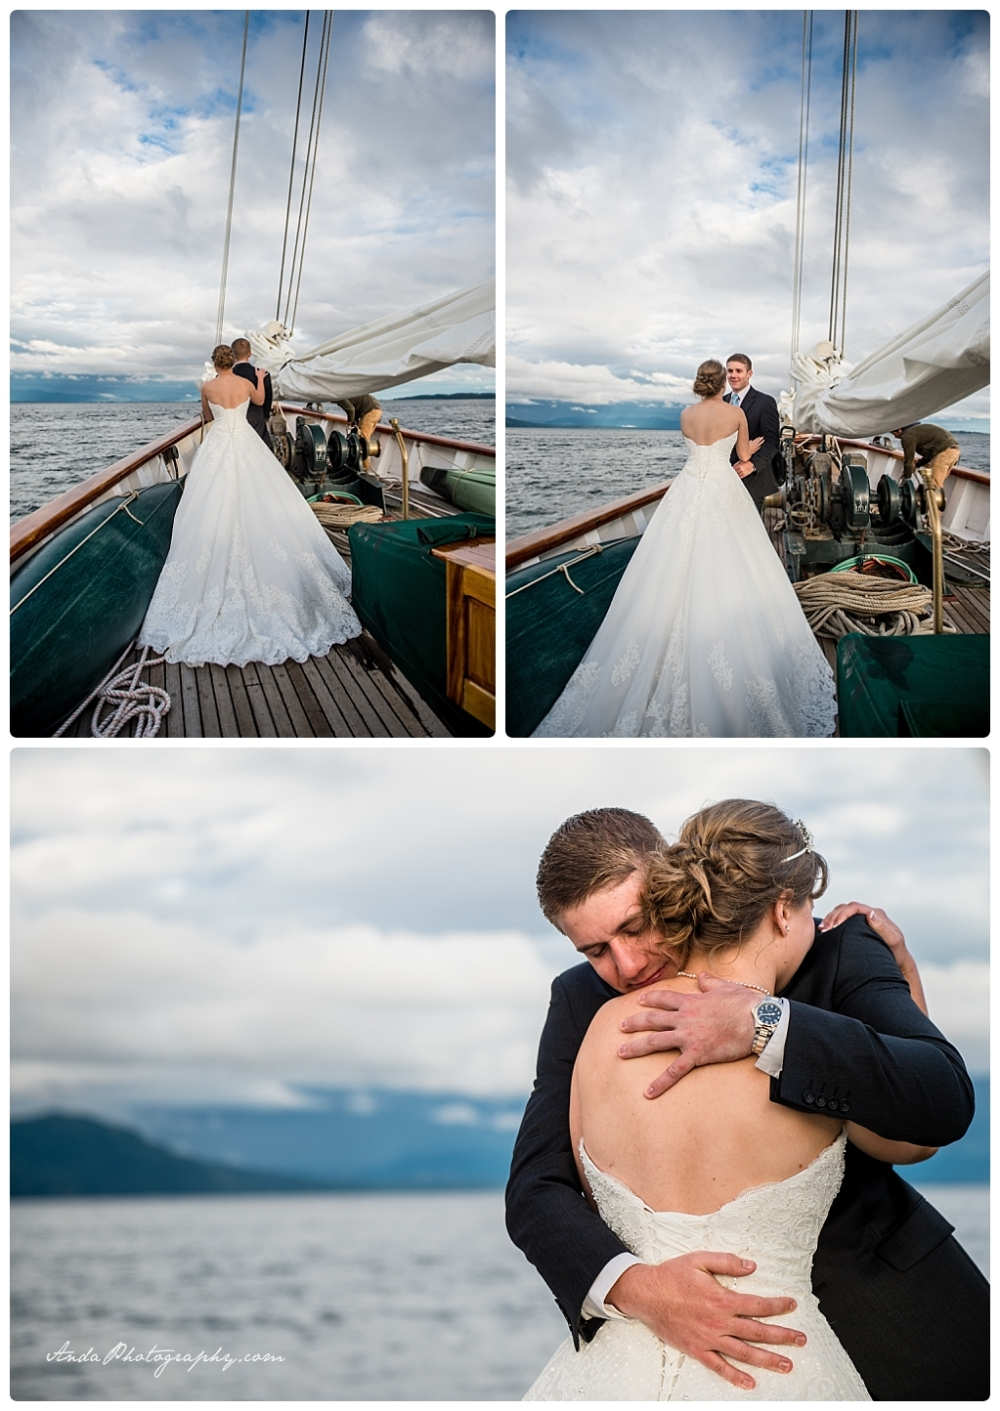 Anda Photography Bellingham wedding photographer seattle wedding photographer Schooner Zodiak Wedding photos_0022